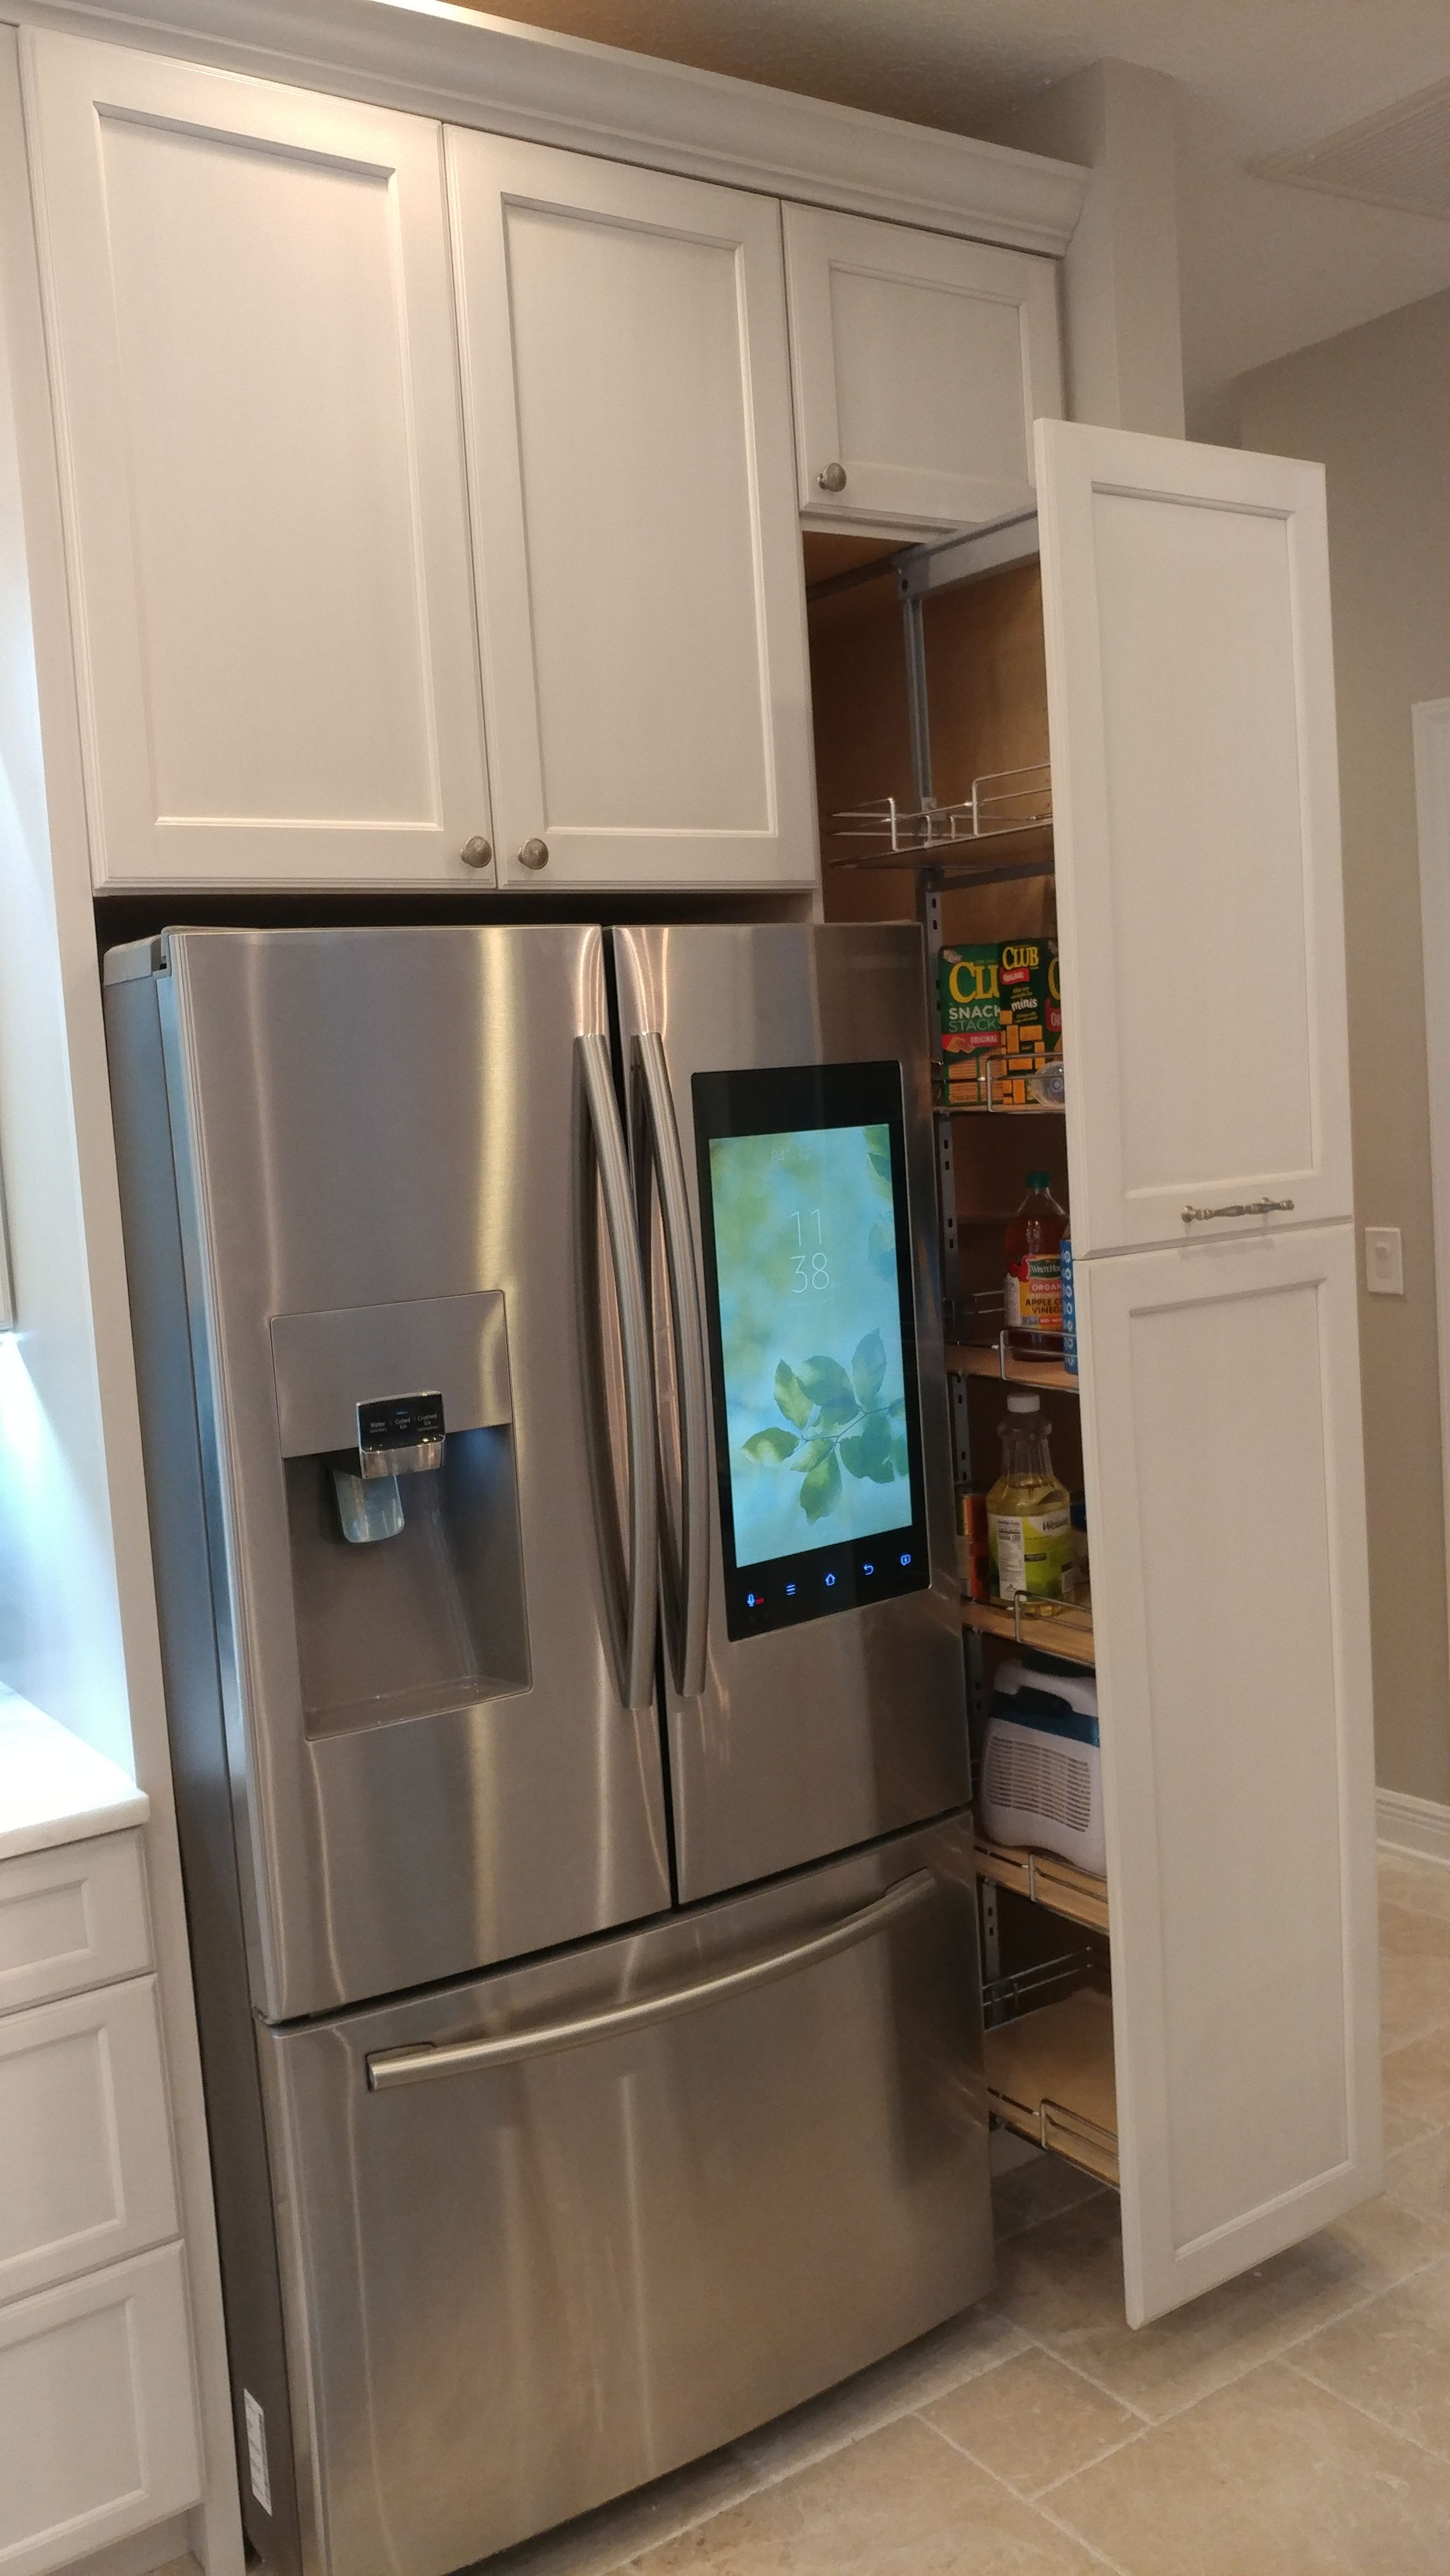 A Chrome Pantry Pullout Maximizes Storage In A Small Space